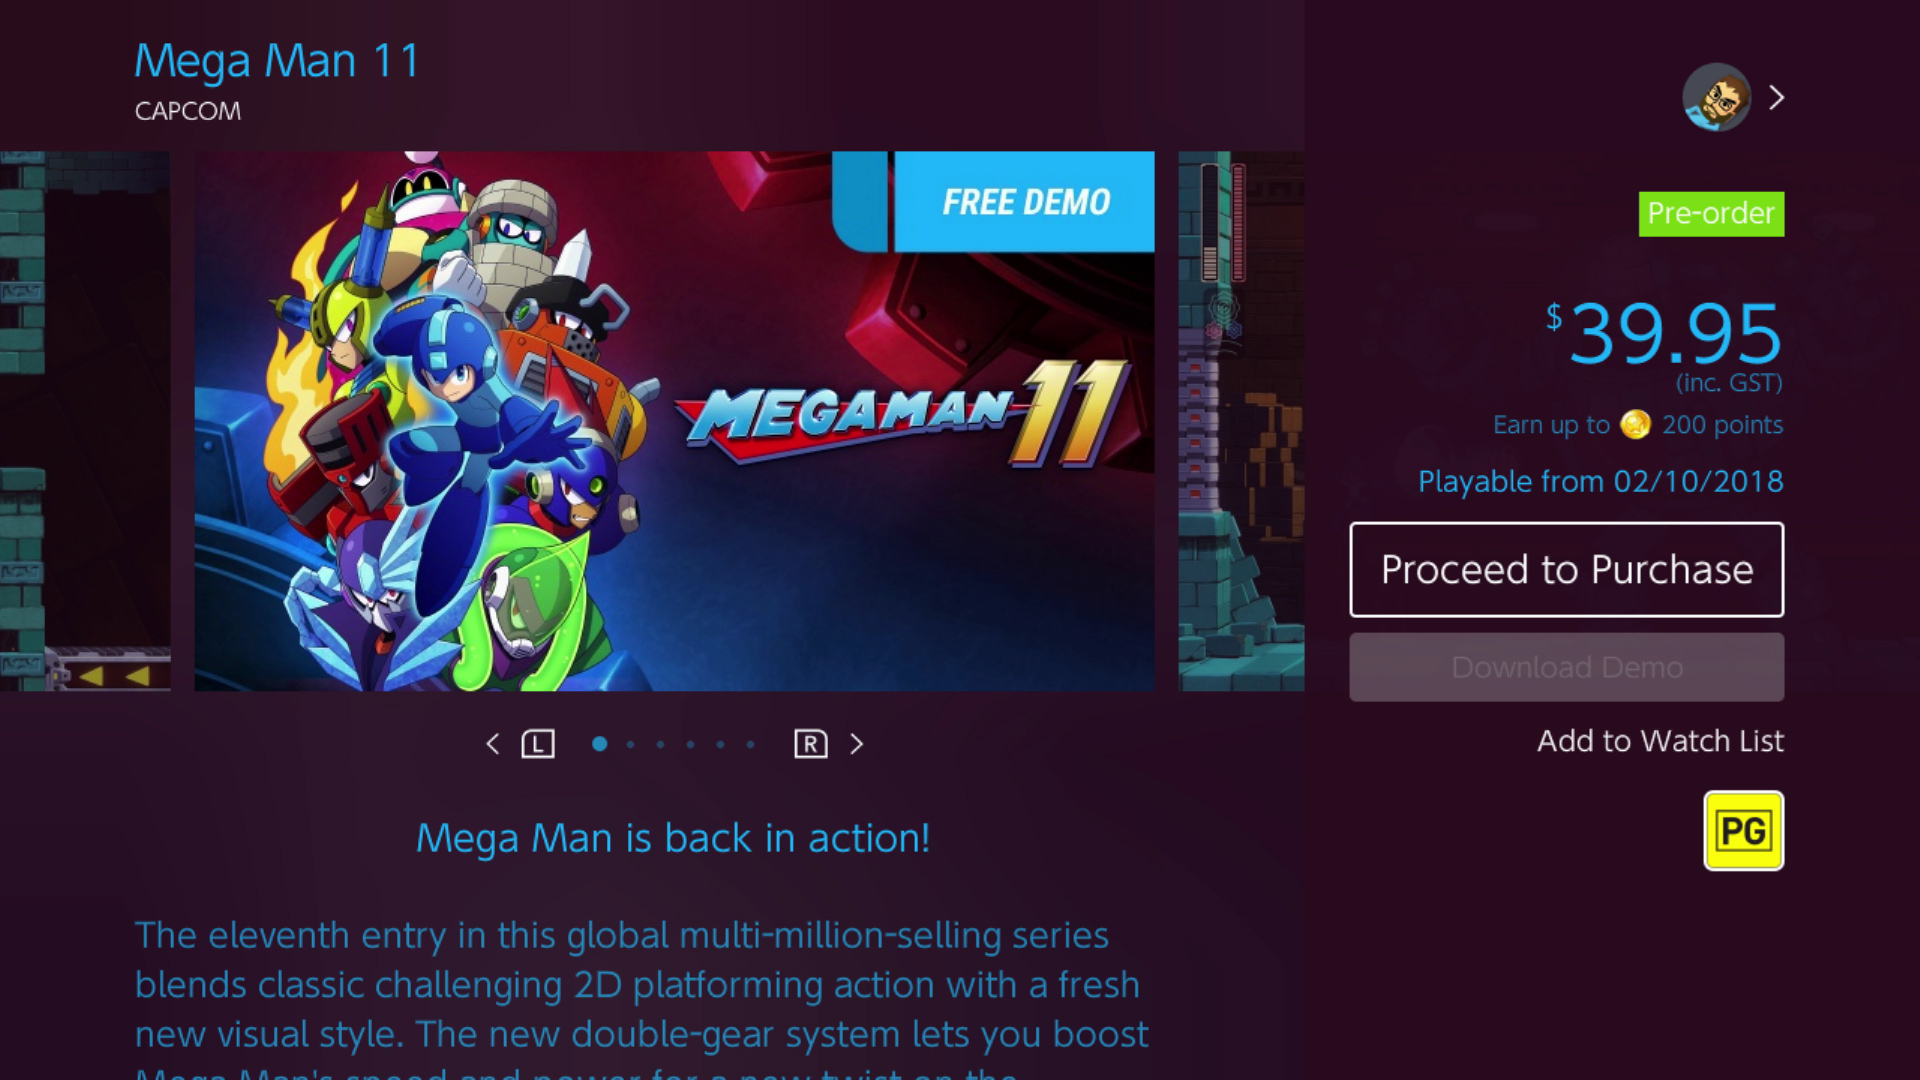 Mega Man 11 demo now available on the Switch eShop - Vooks